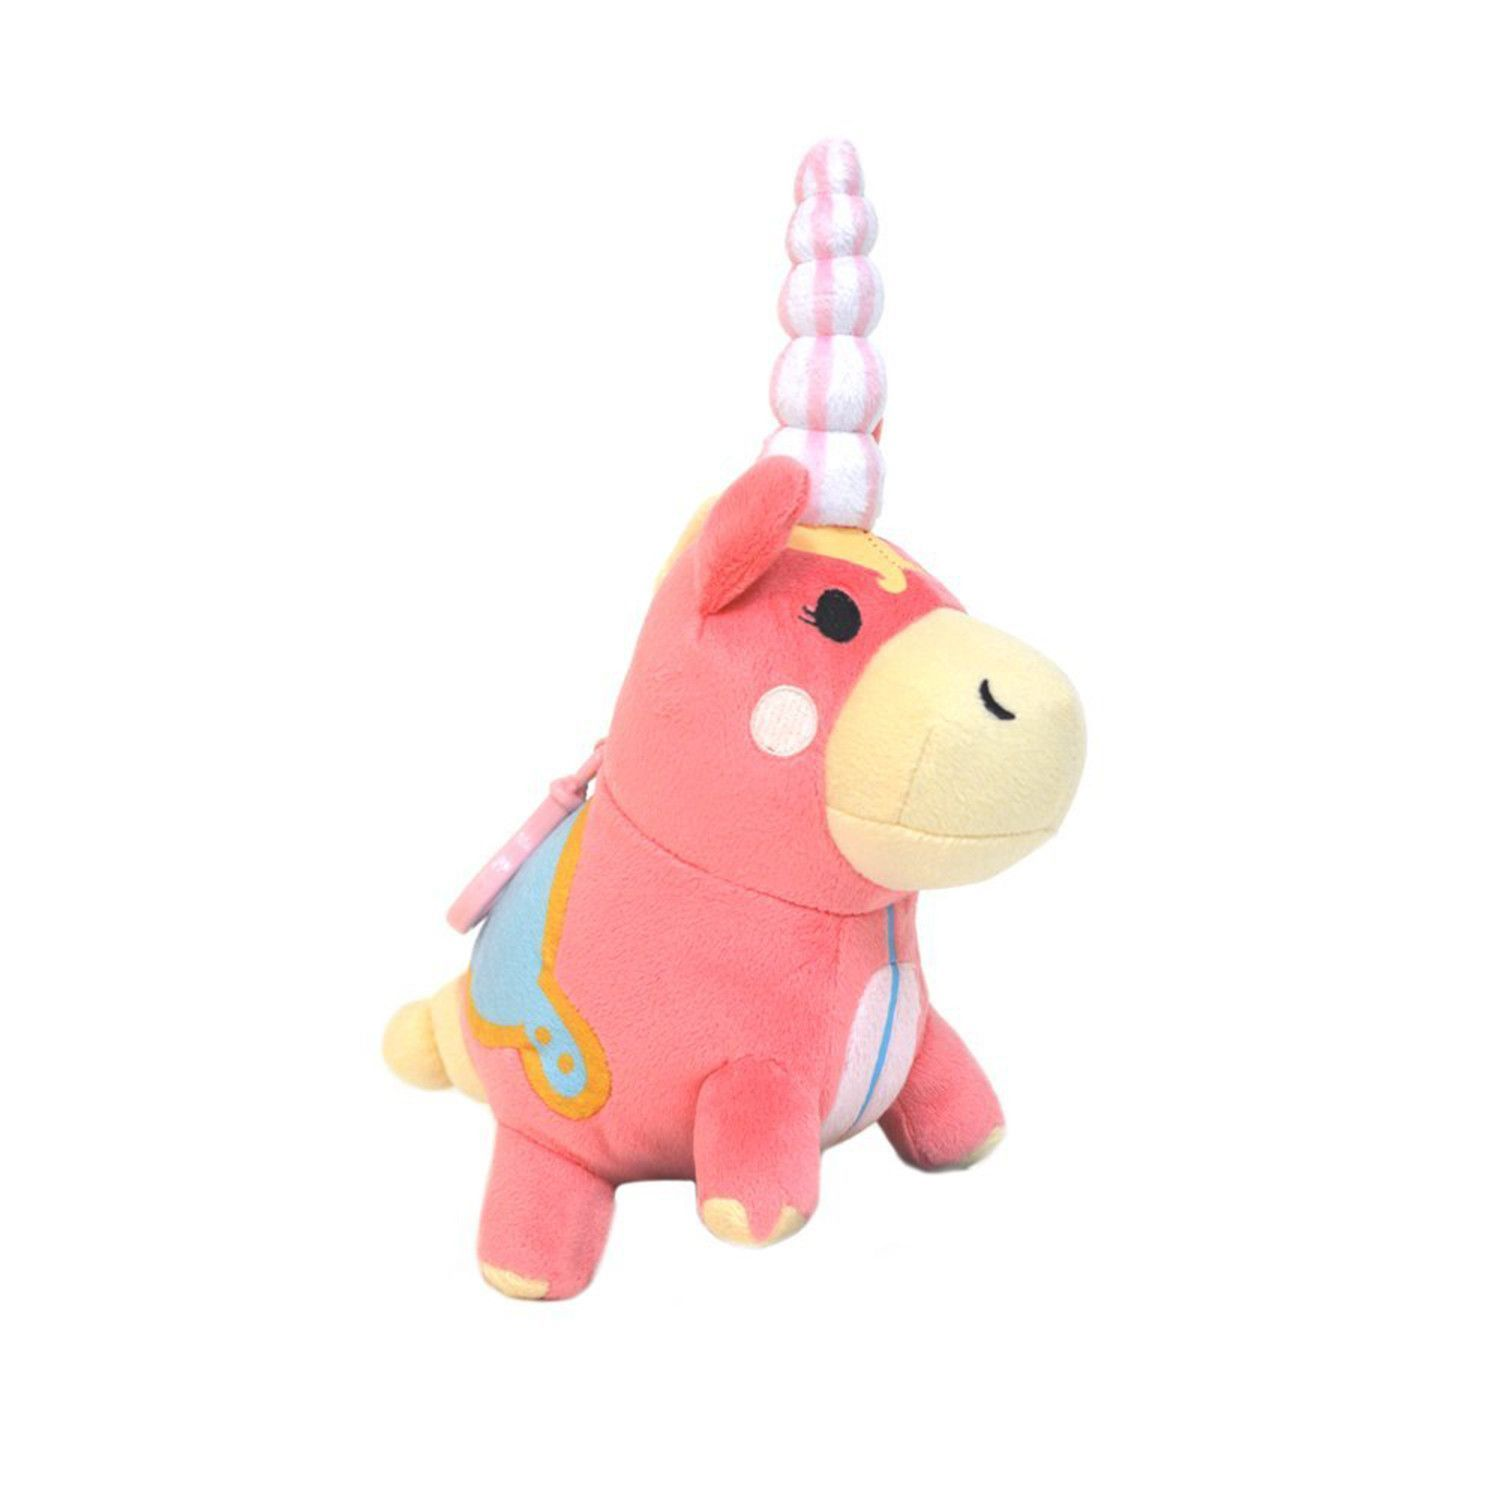 Welcome to Pyroland, the world through the Pyro's eyes and the home of the Balloonicorn! Officially licensed from the hit video game Team Fortress 2 comes the Balloonicorn Mini Plush! Measuring 6-inch